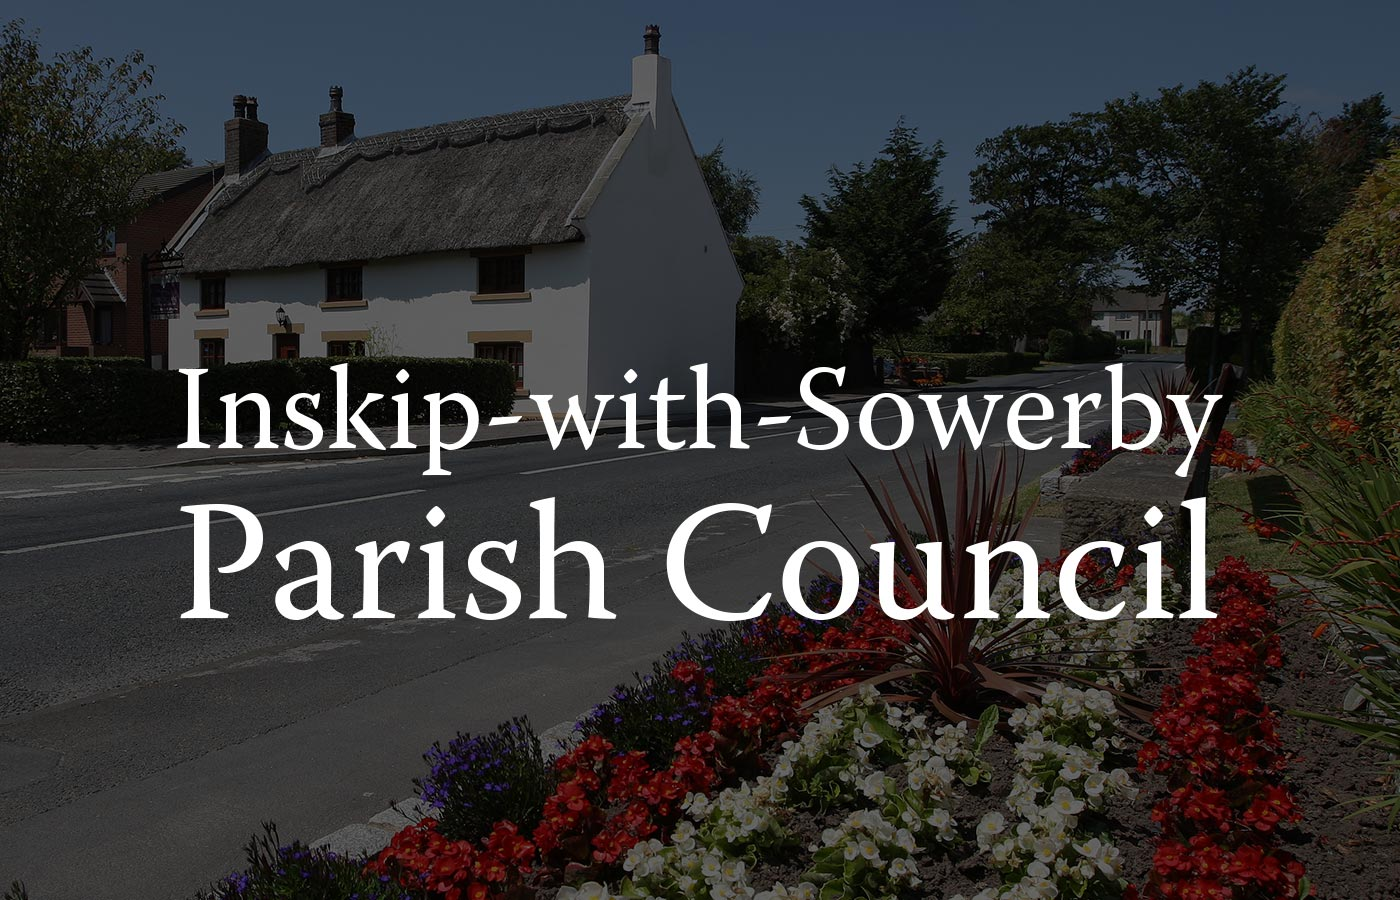 Parish Council Website Design